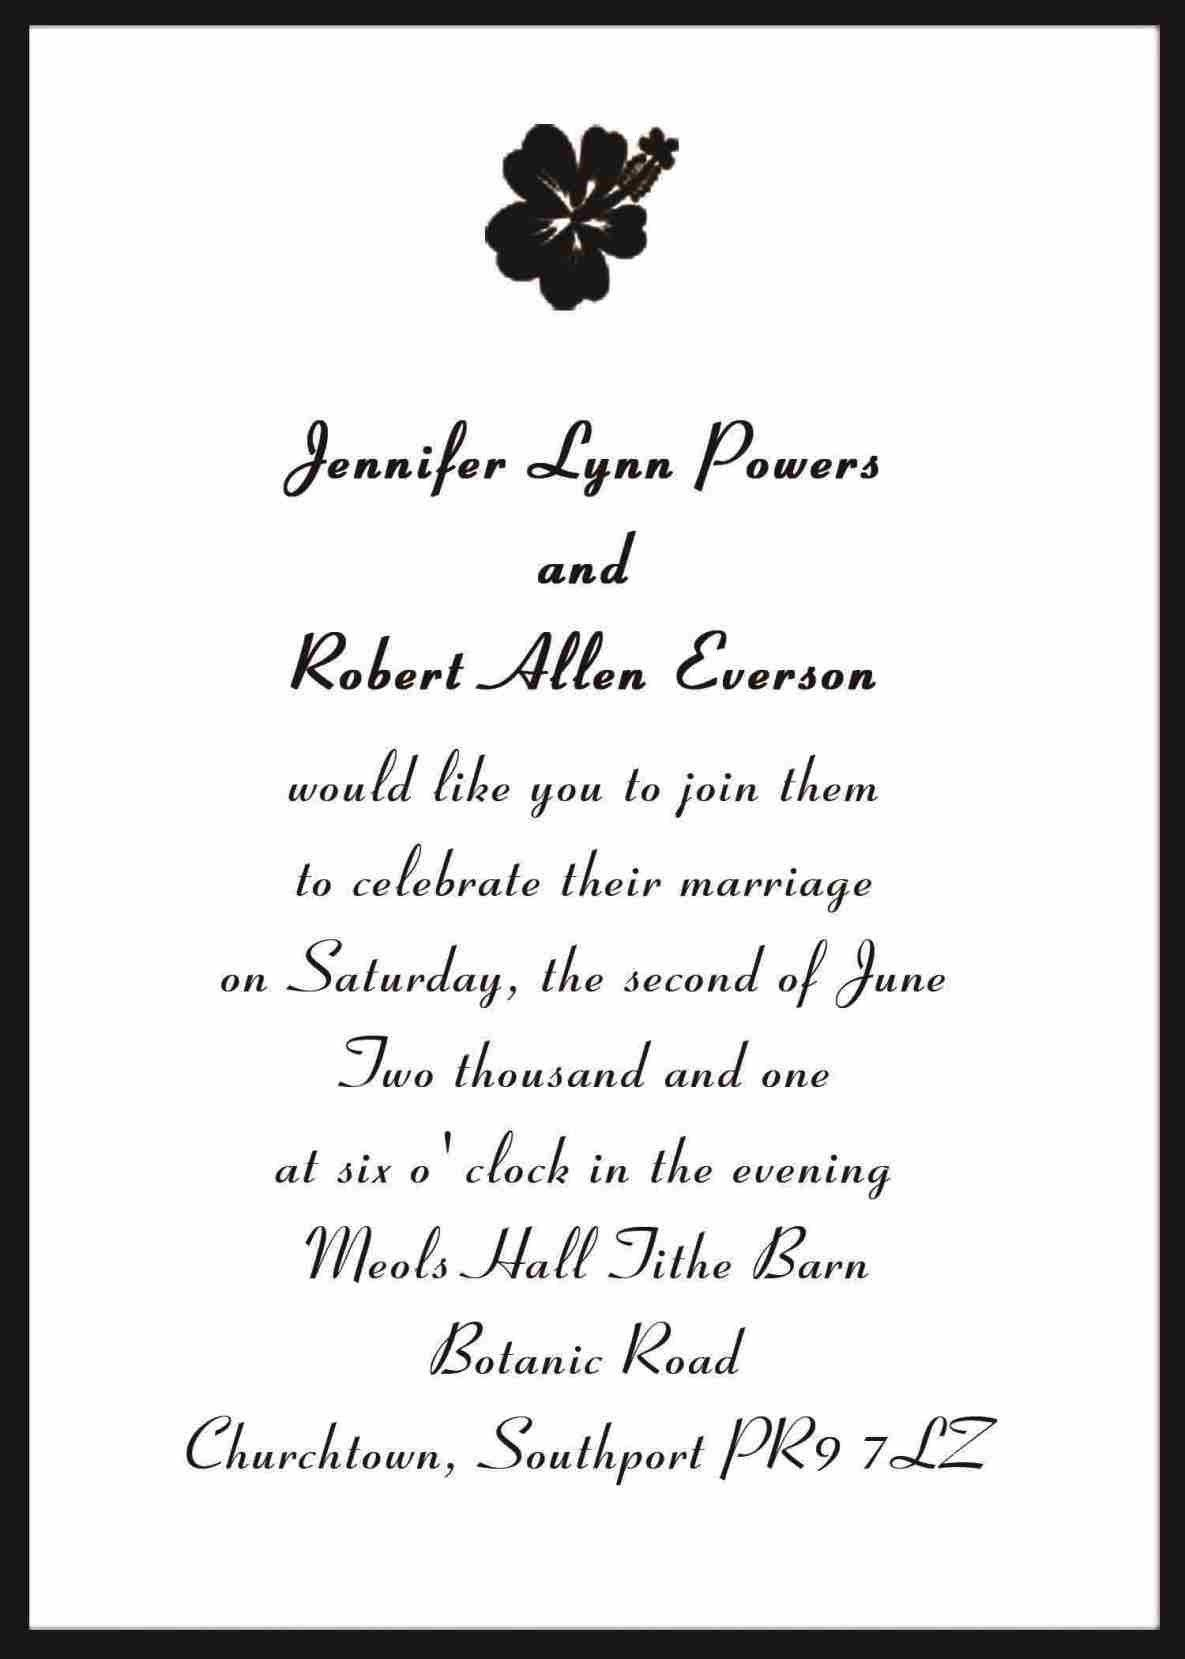 Wedding Invitation Wording Uk Classic Wedding Invitations Traditional Wedding Invitations Online Wedding Invitations Templates